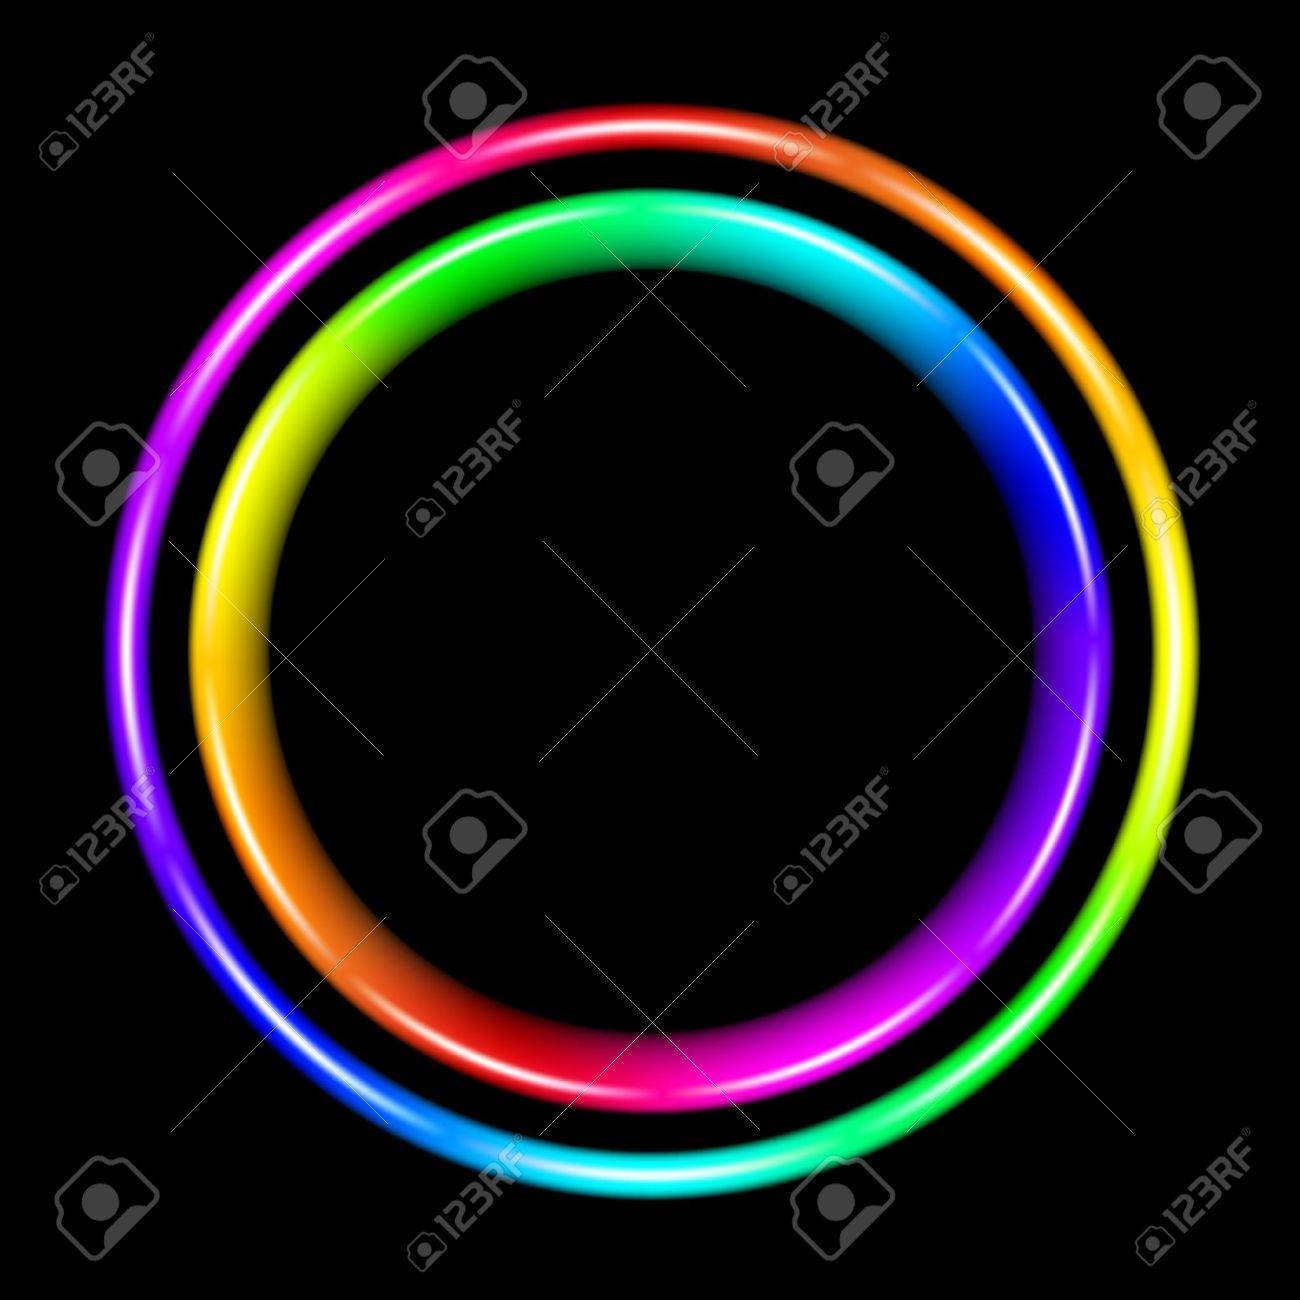 Multicolor spectral circle. Illustration on black background Stock Vector - 9546476